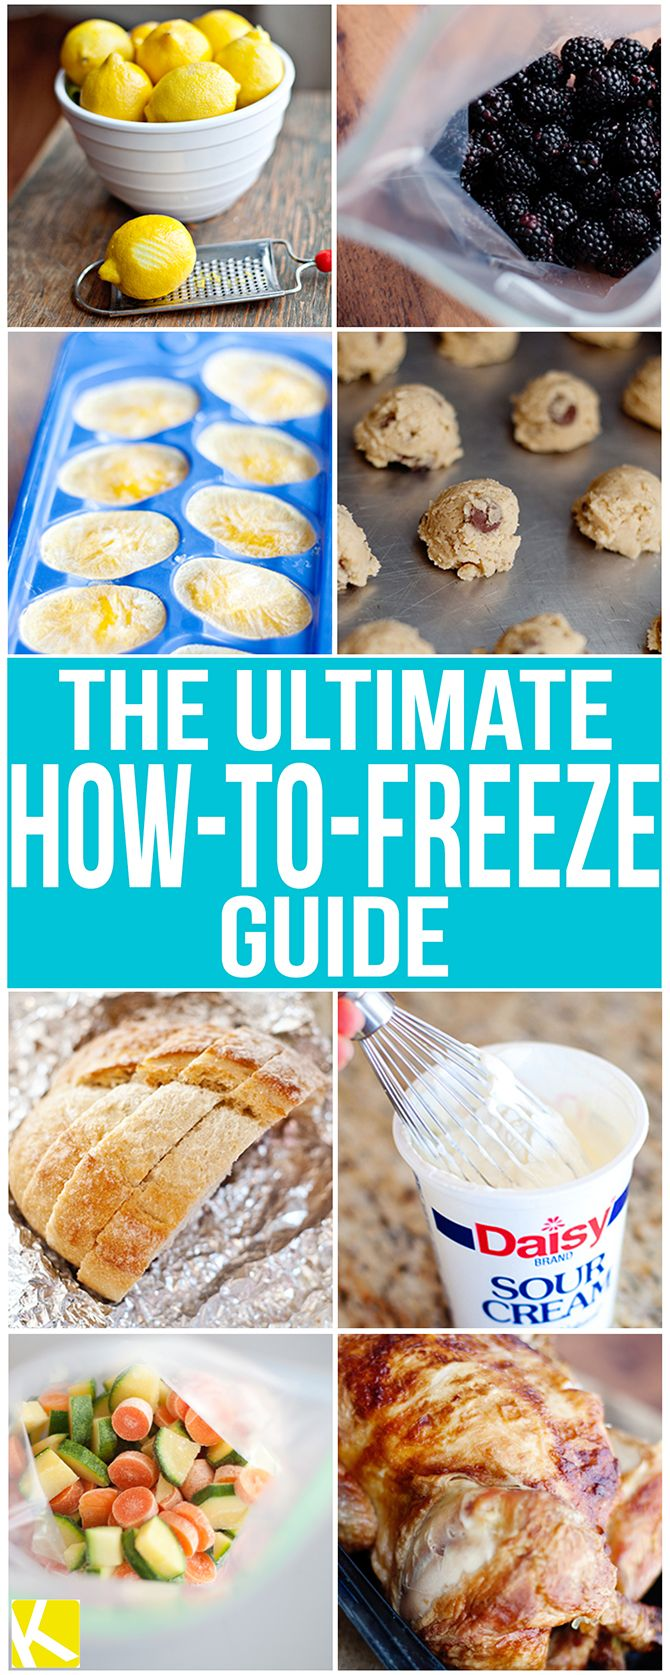 The Ultimate How-to-Freeze Guide